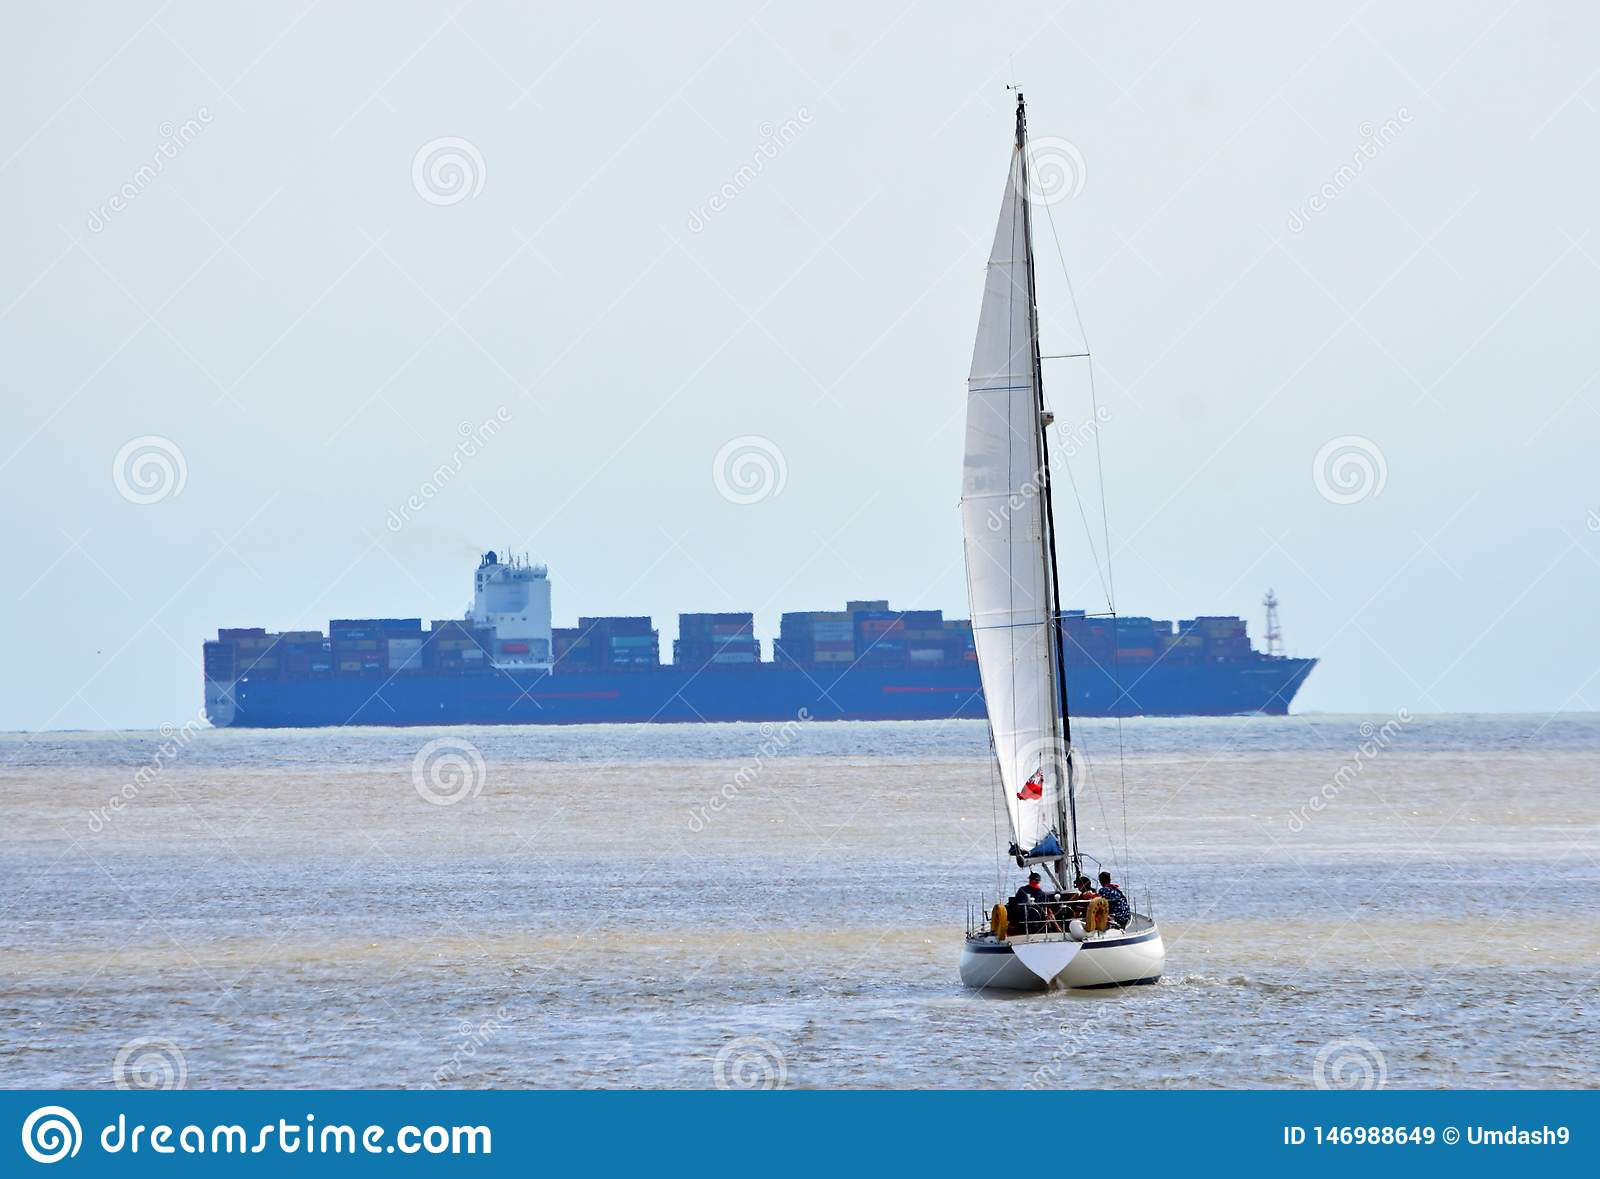 Yacht under Sail with large container ship in the background.